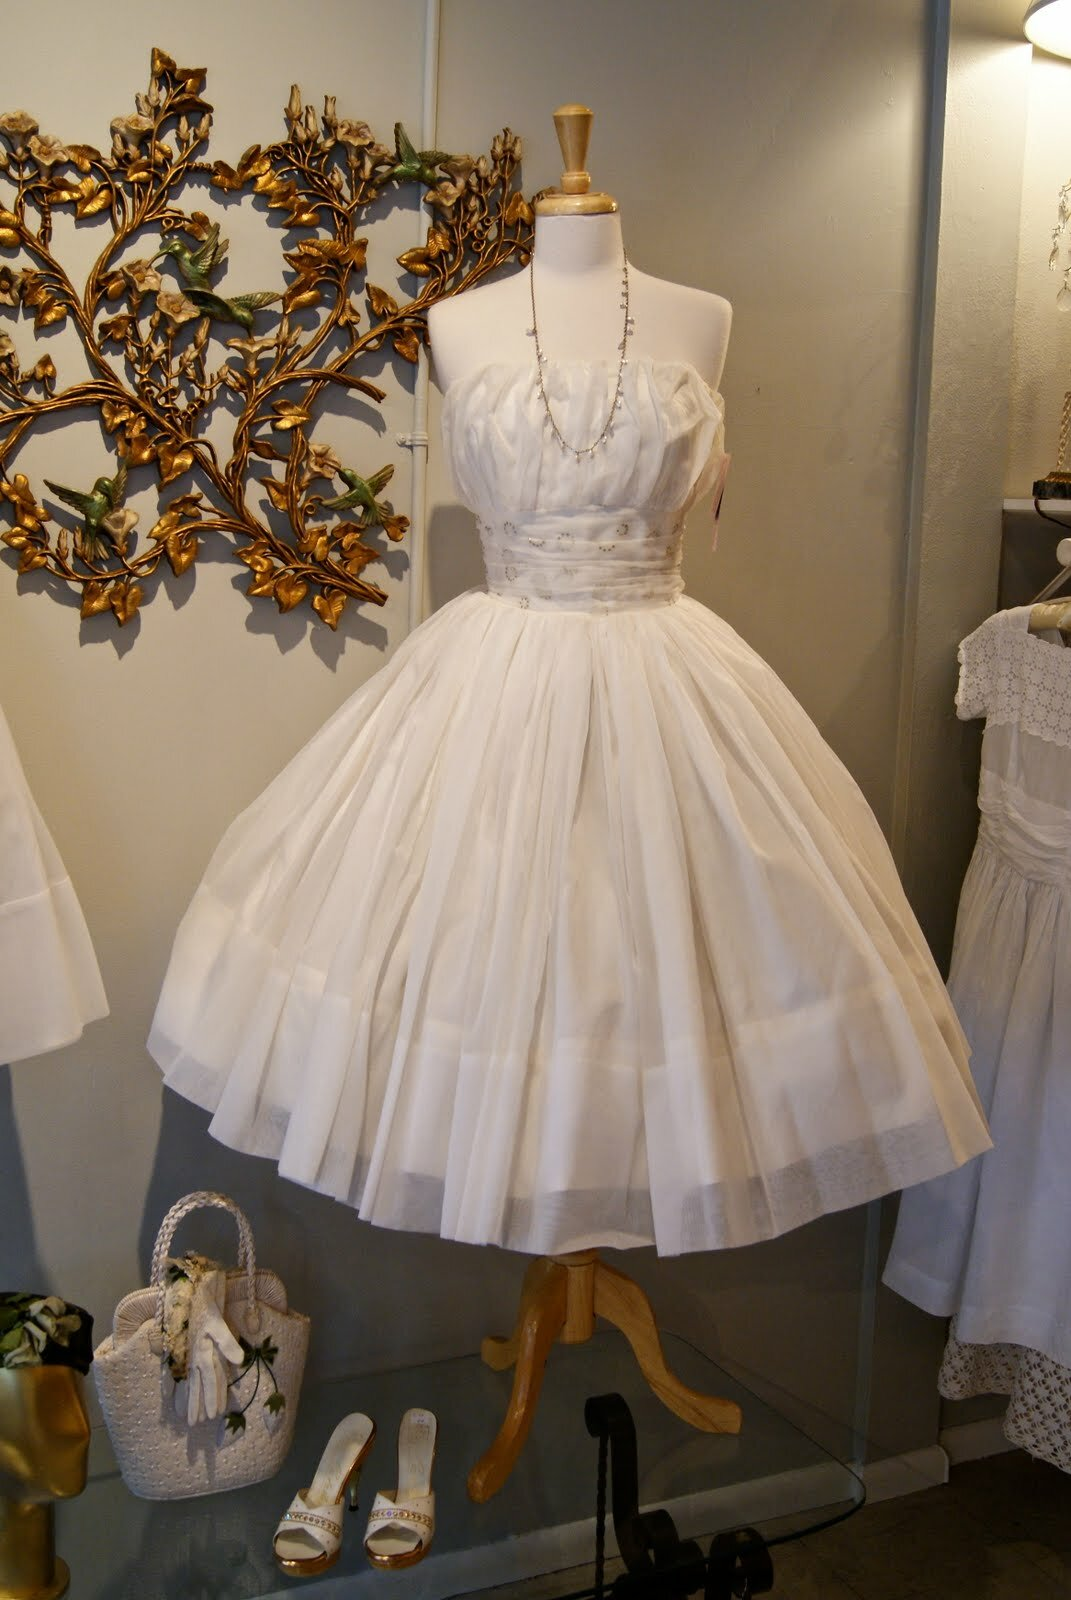 Vintage wedding dresses portland oregon photo - 5